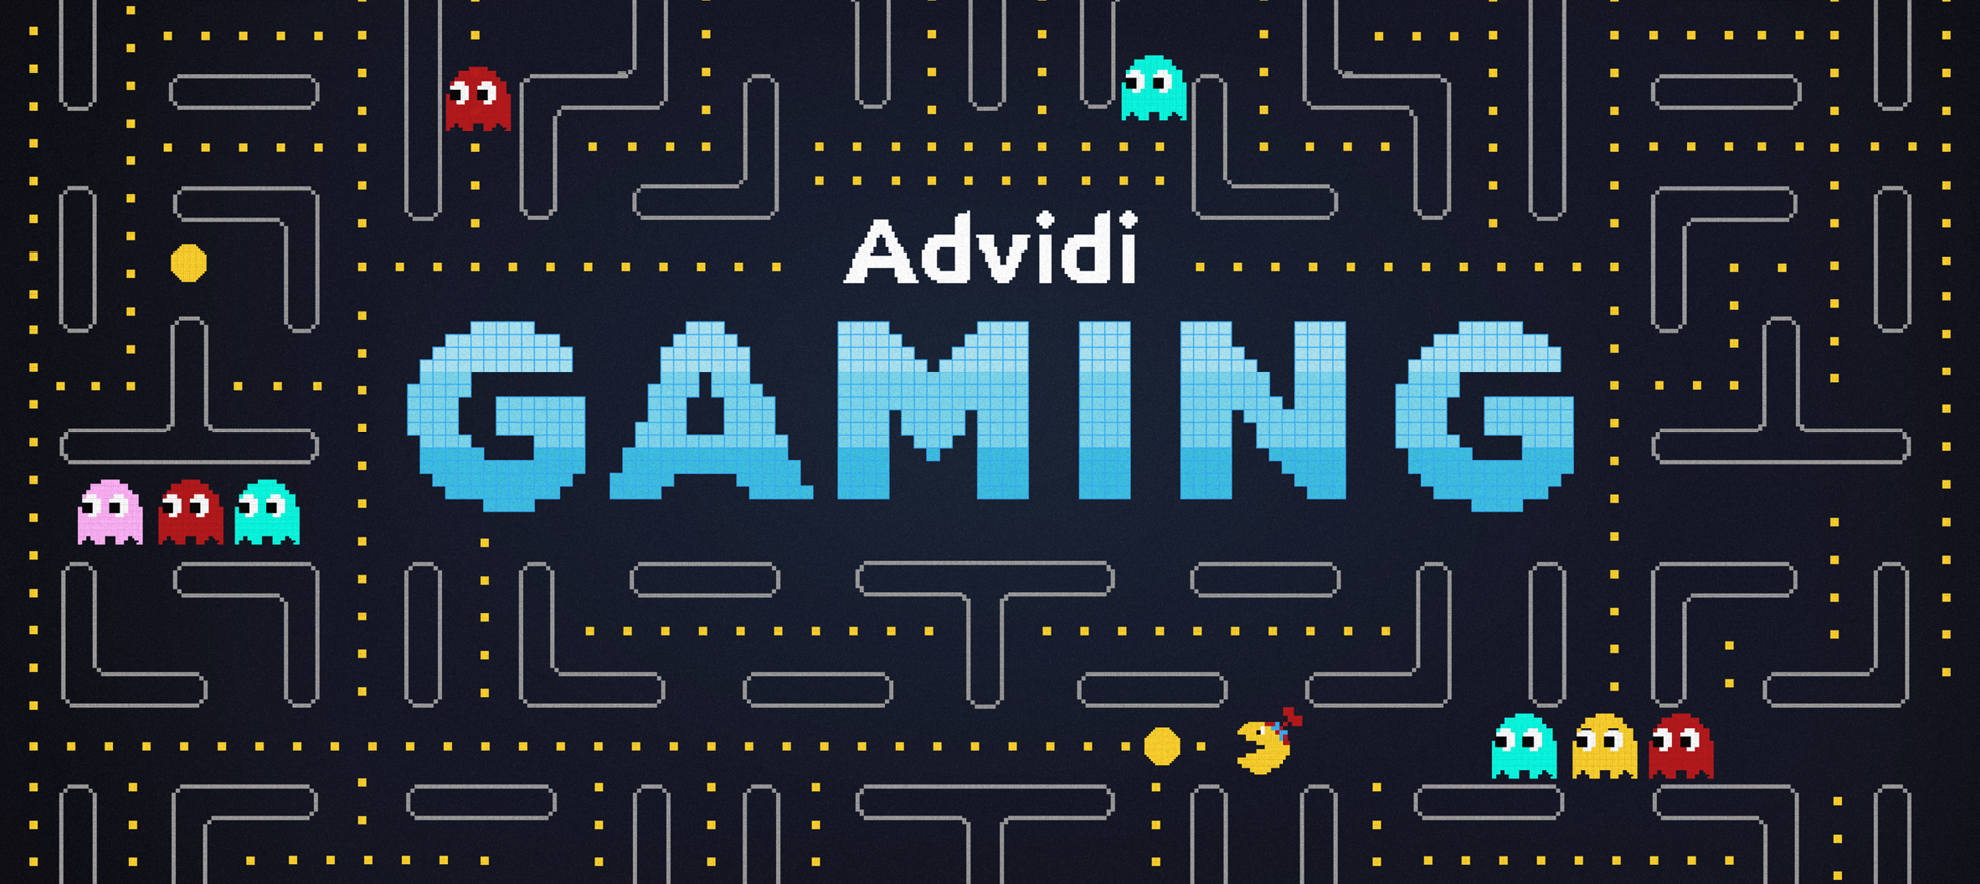 Advidi Expands to Gaming